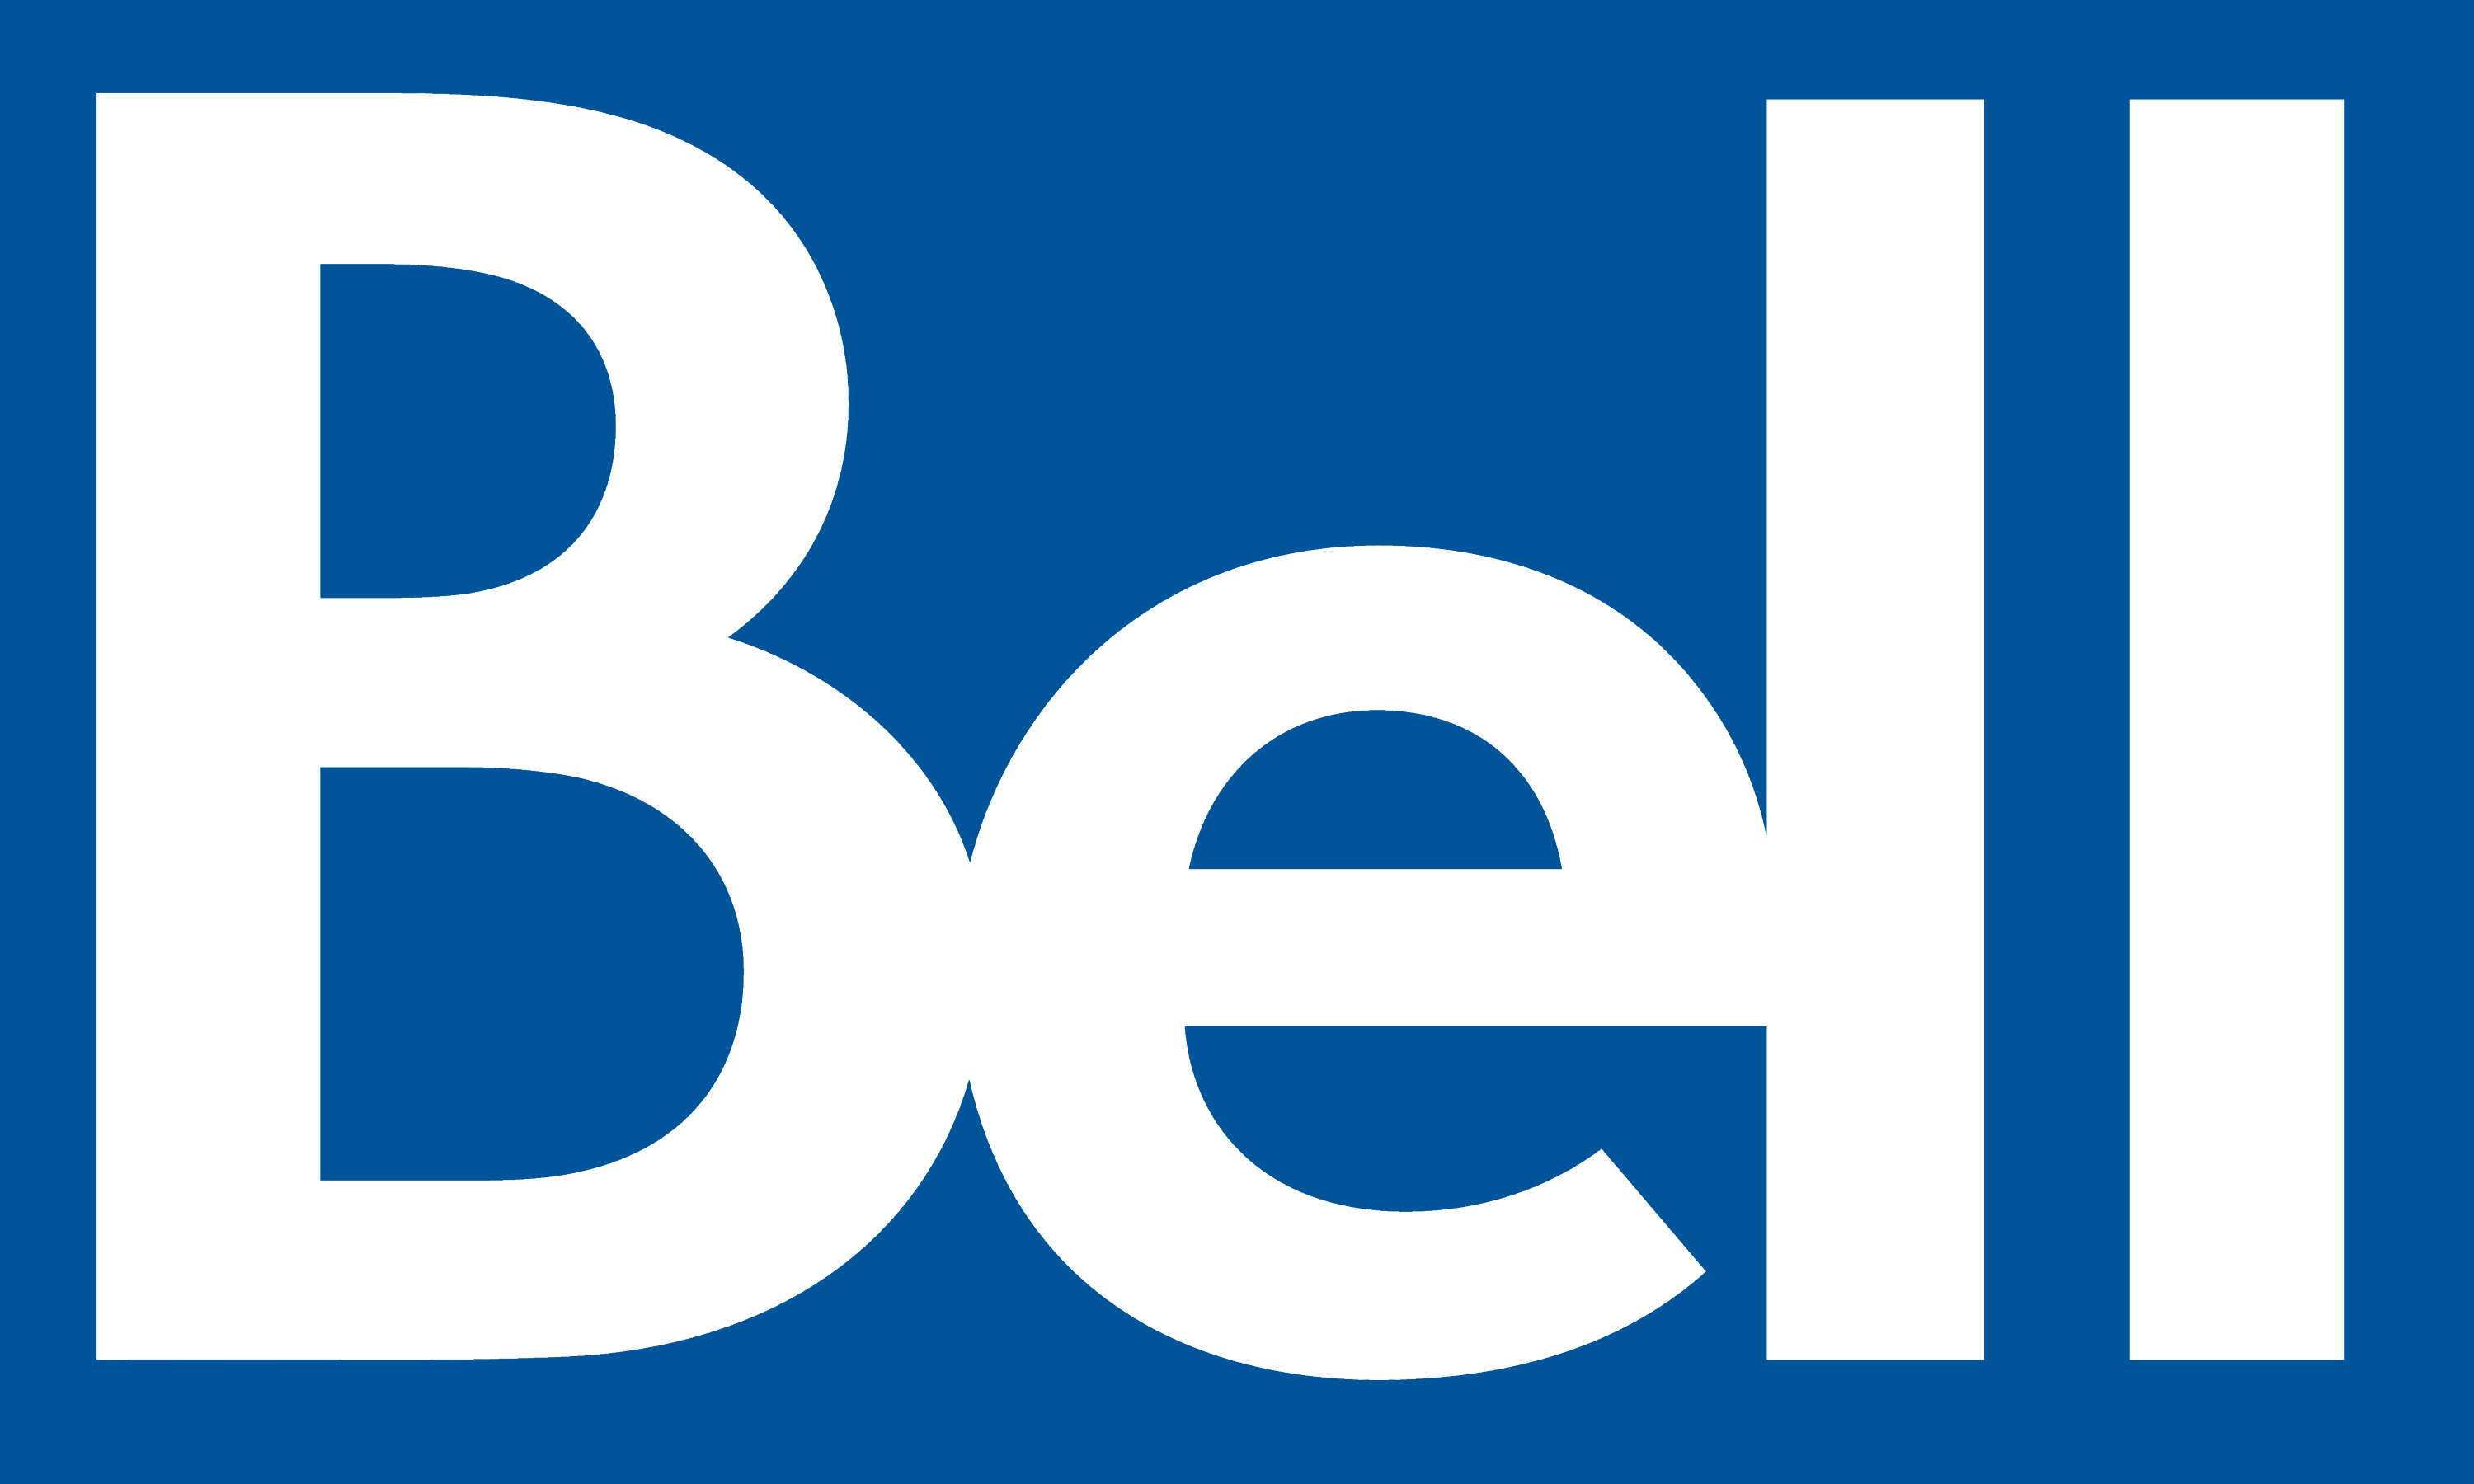 Bell Canada – Logos Download